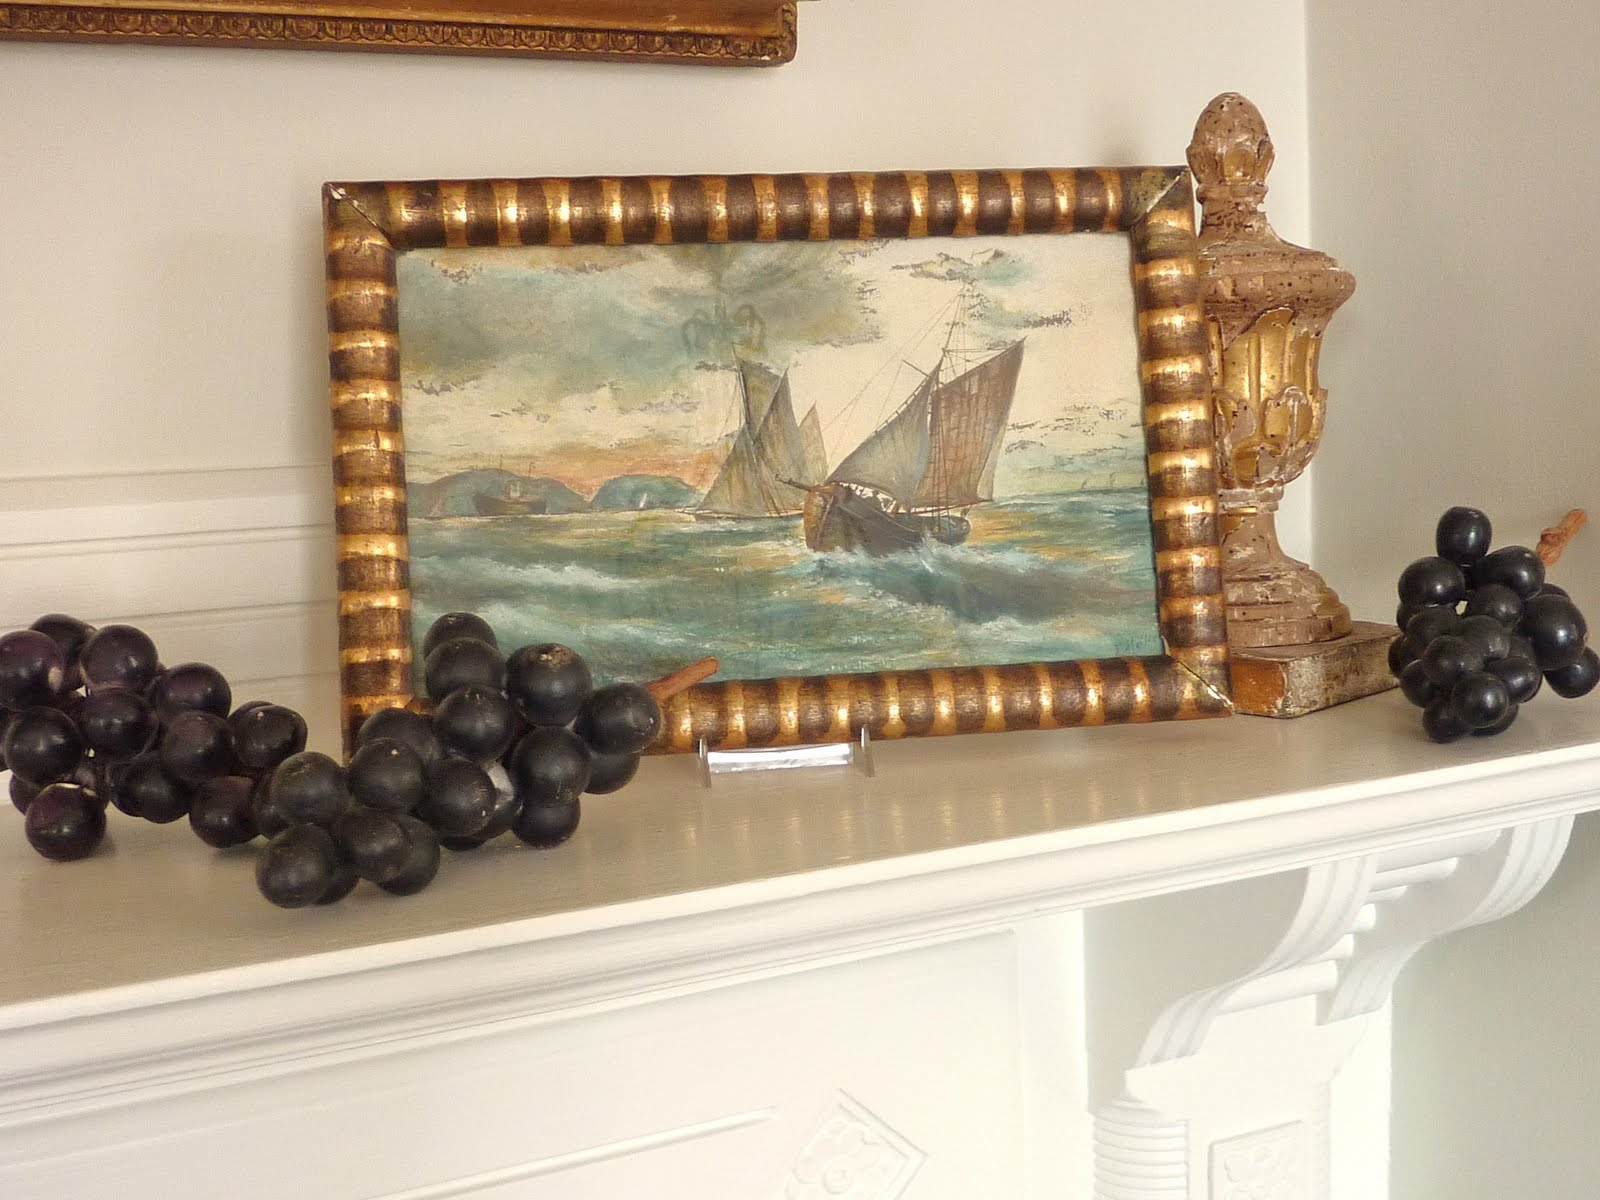 Small antique watercolor behind glass in its original frame found in